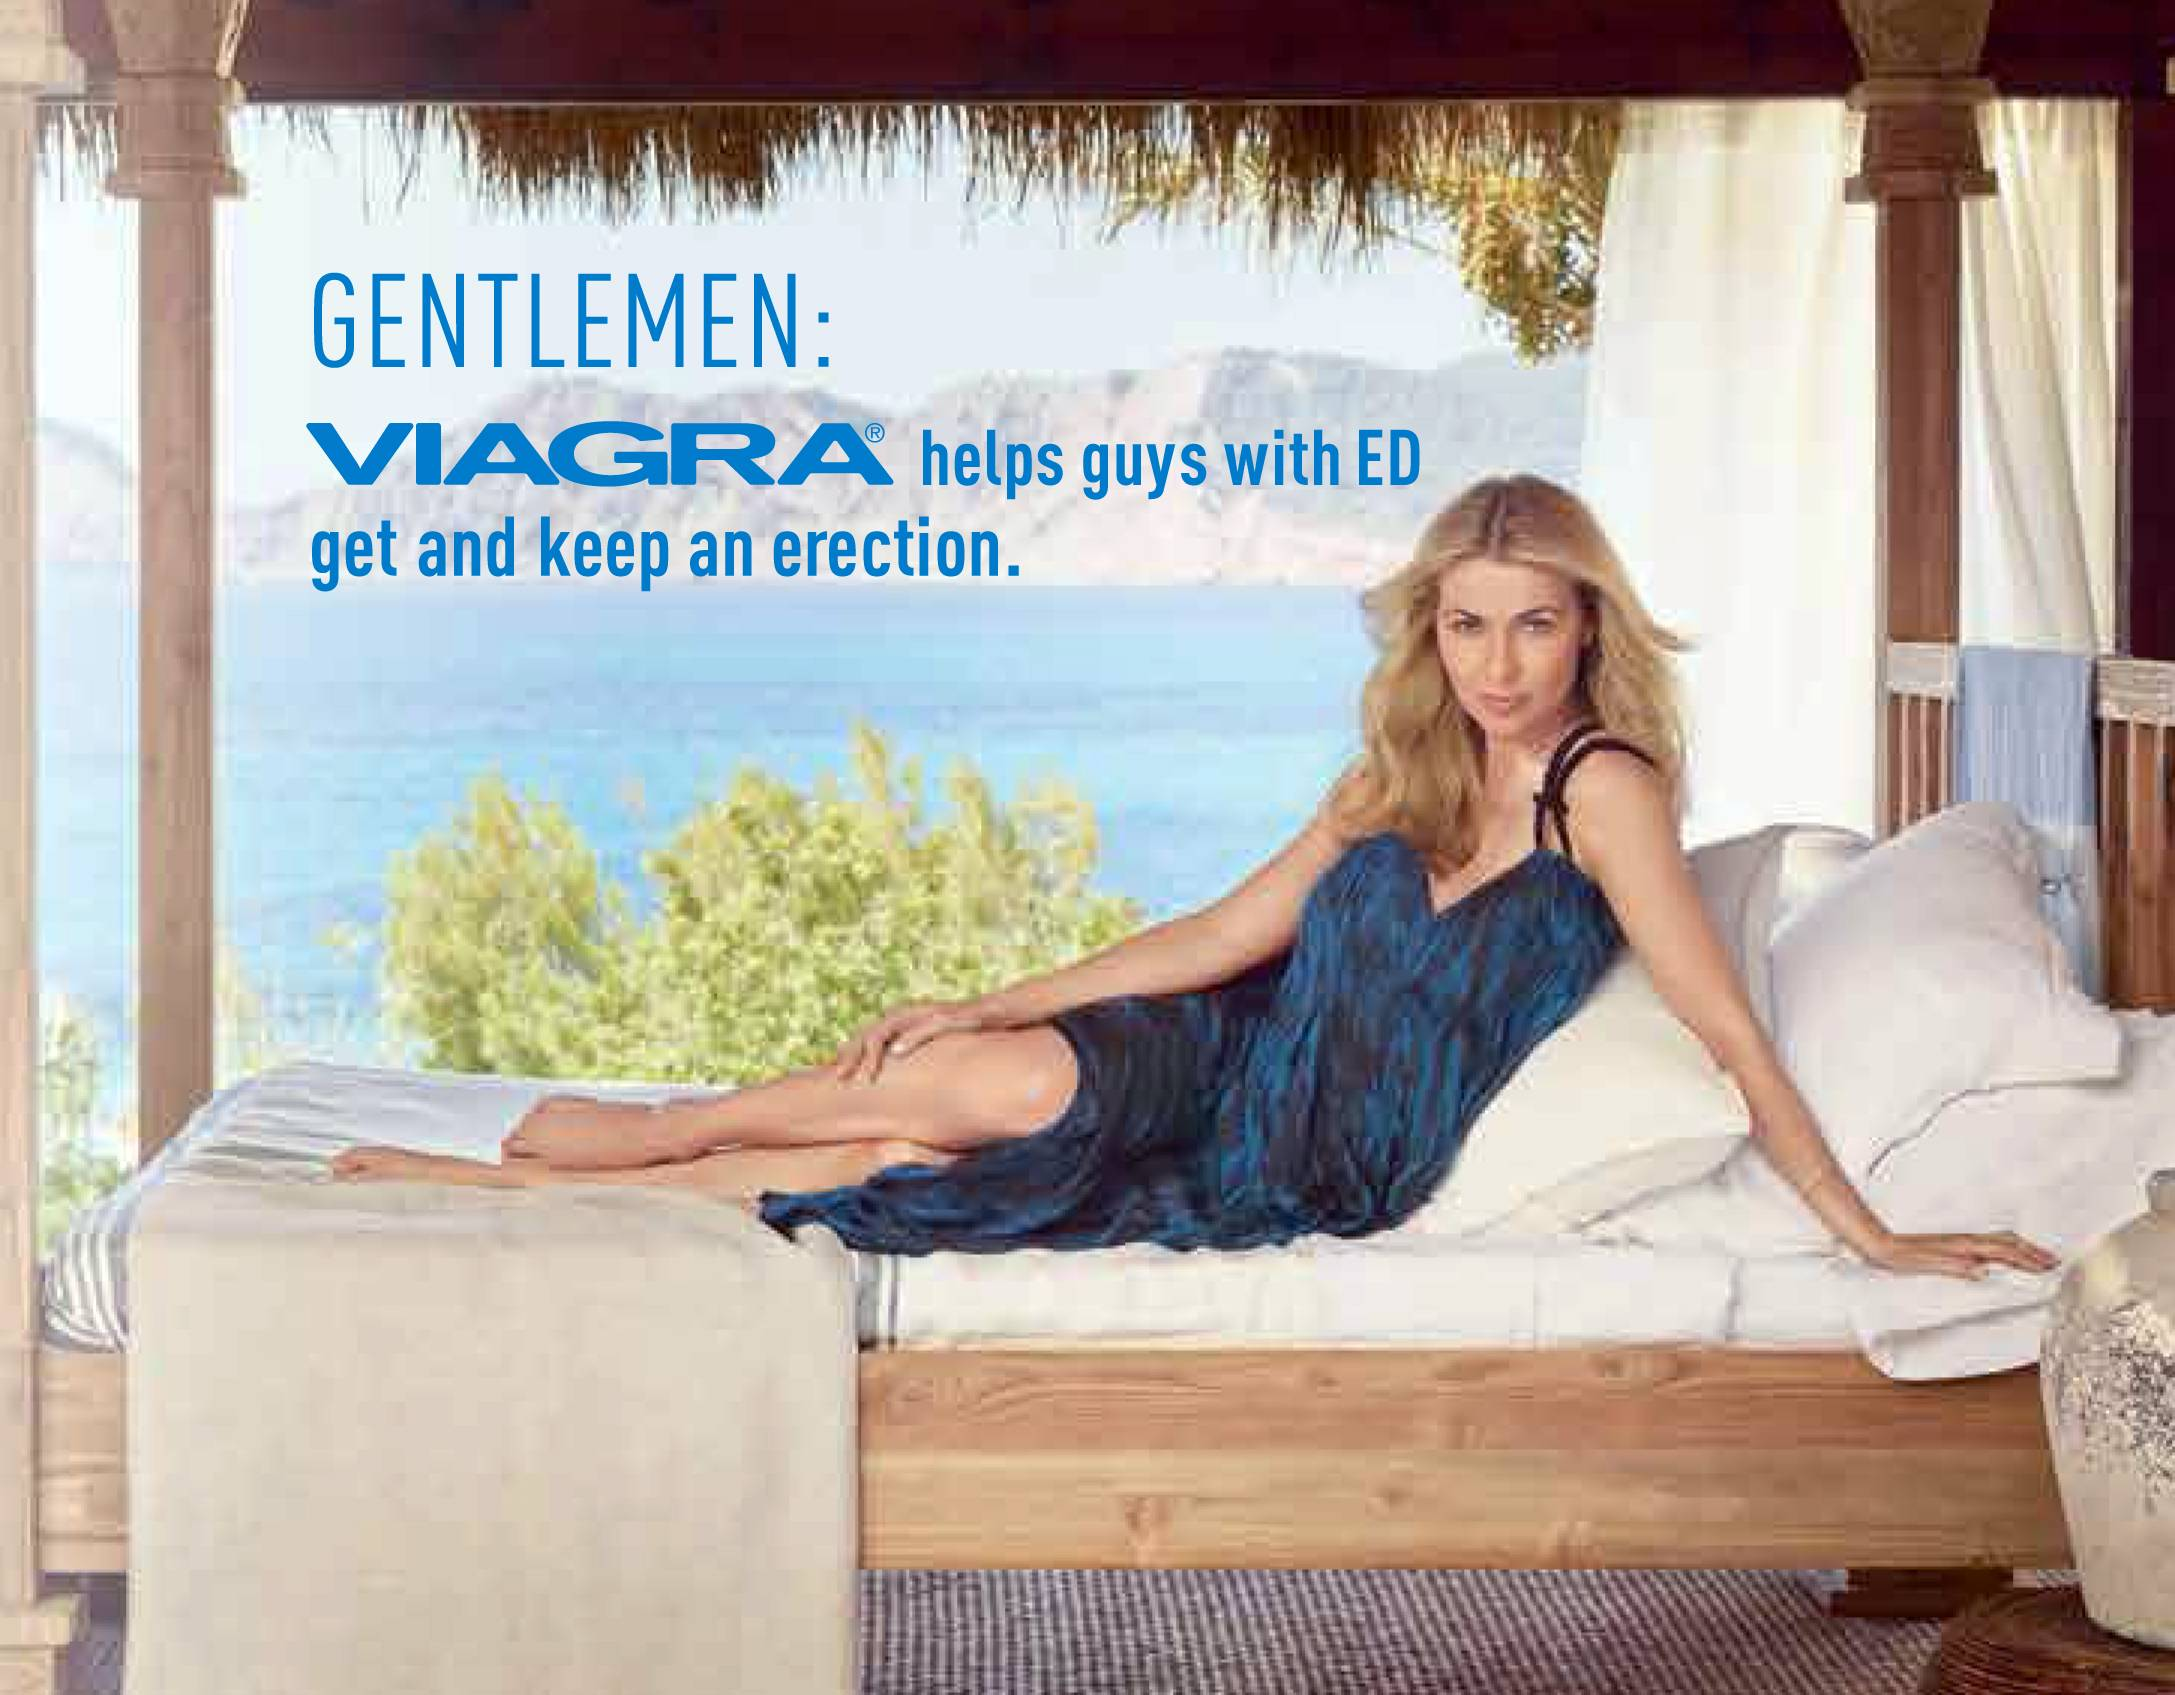 This image provided by Pfizer Inc. shows a new print ad for Viagra, the world's top-selling erectile dysfunction drug. Executives at New York-based Pfizer hope the new ad campaign that launched Tuesday, which includes print ads in publications and a new 60-second television commercial, will nudge women to broach the subject with their mates.